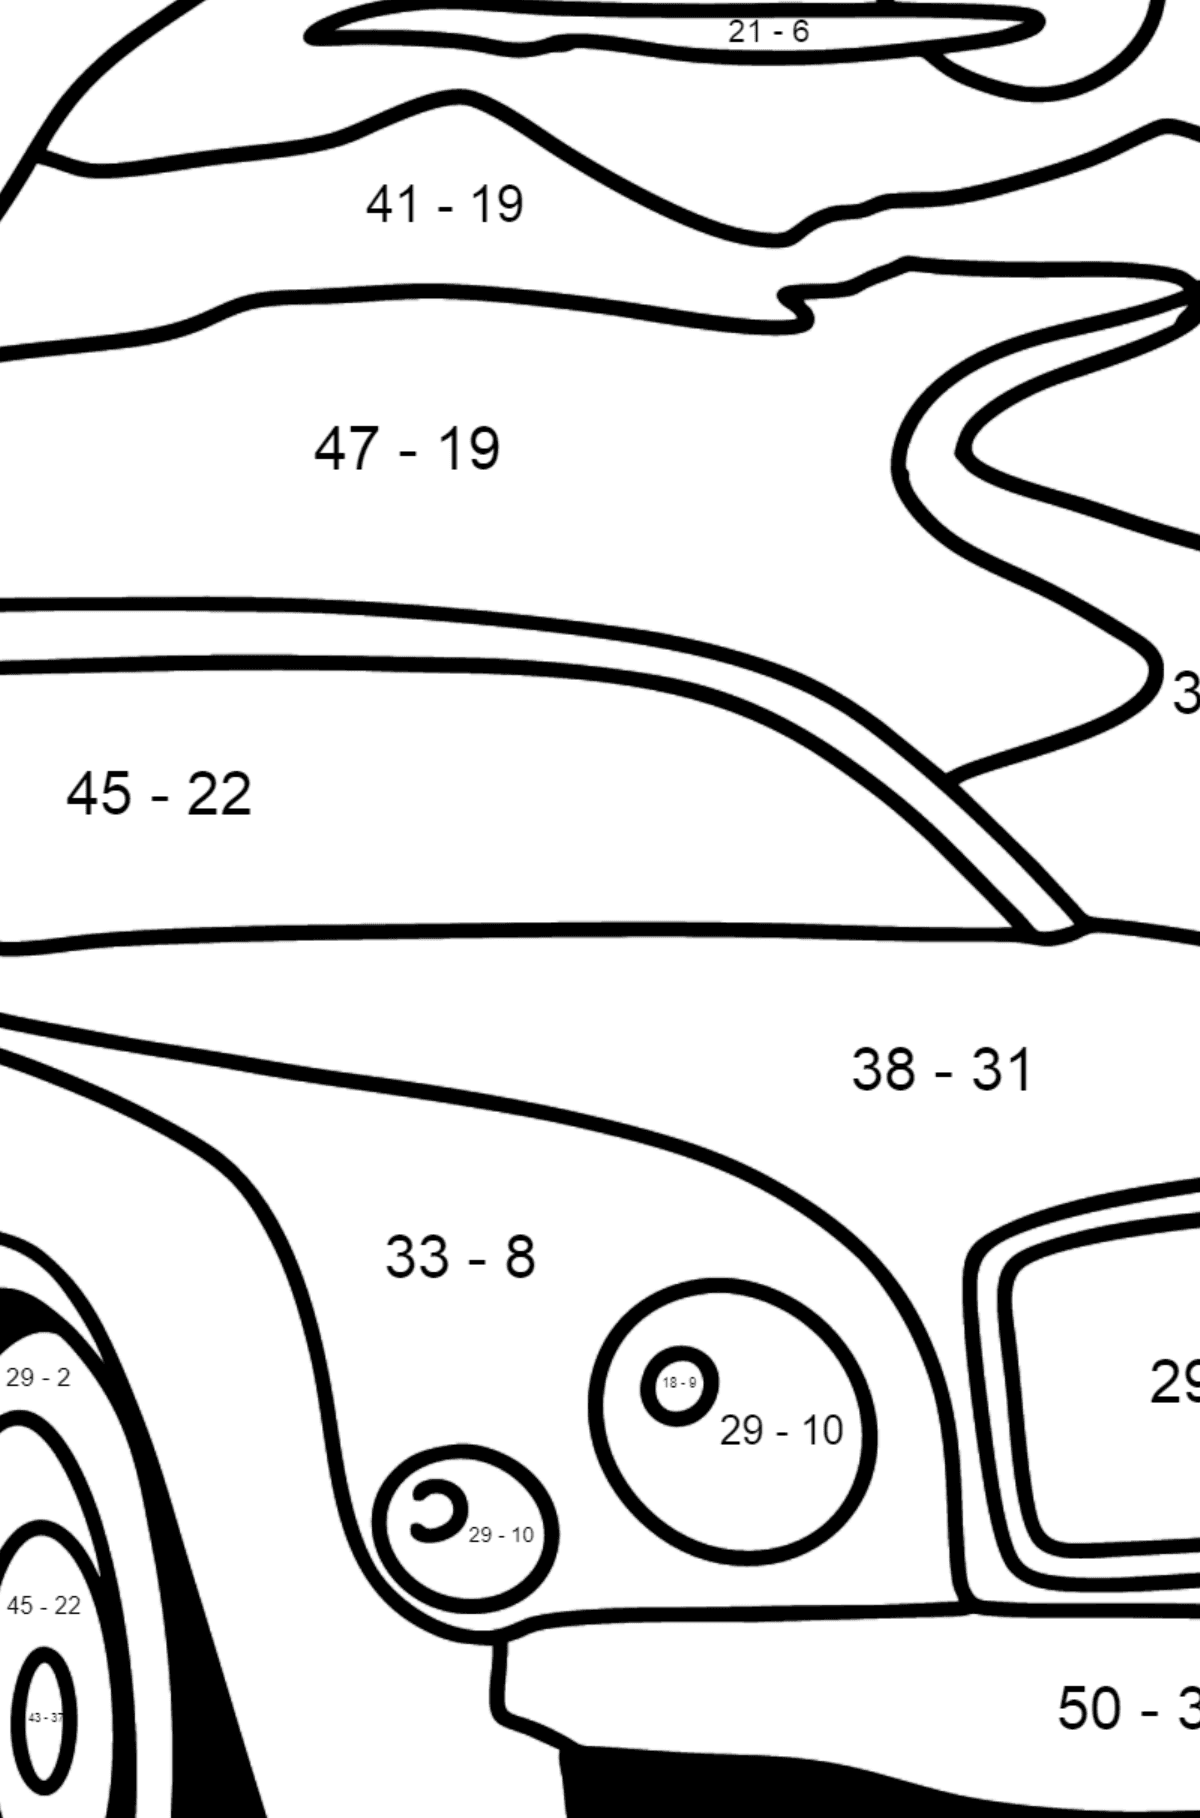 Bentley Mulsanne Car coloring page - Math Coloring - Subtraction for Kids